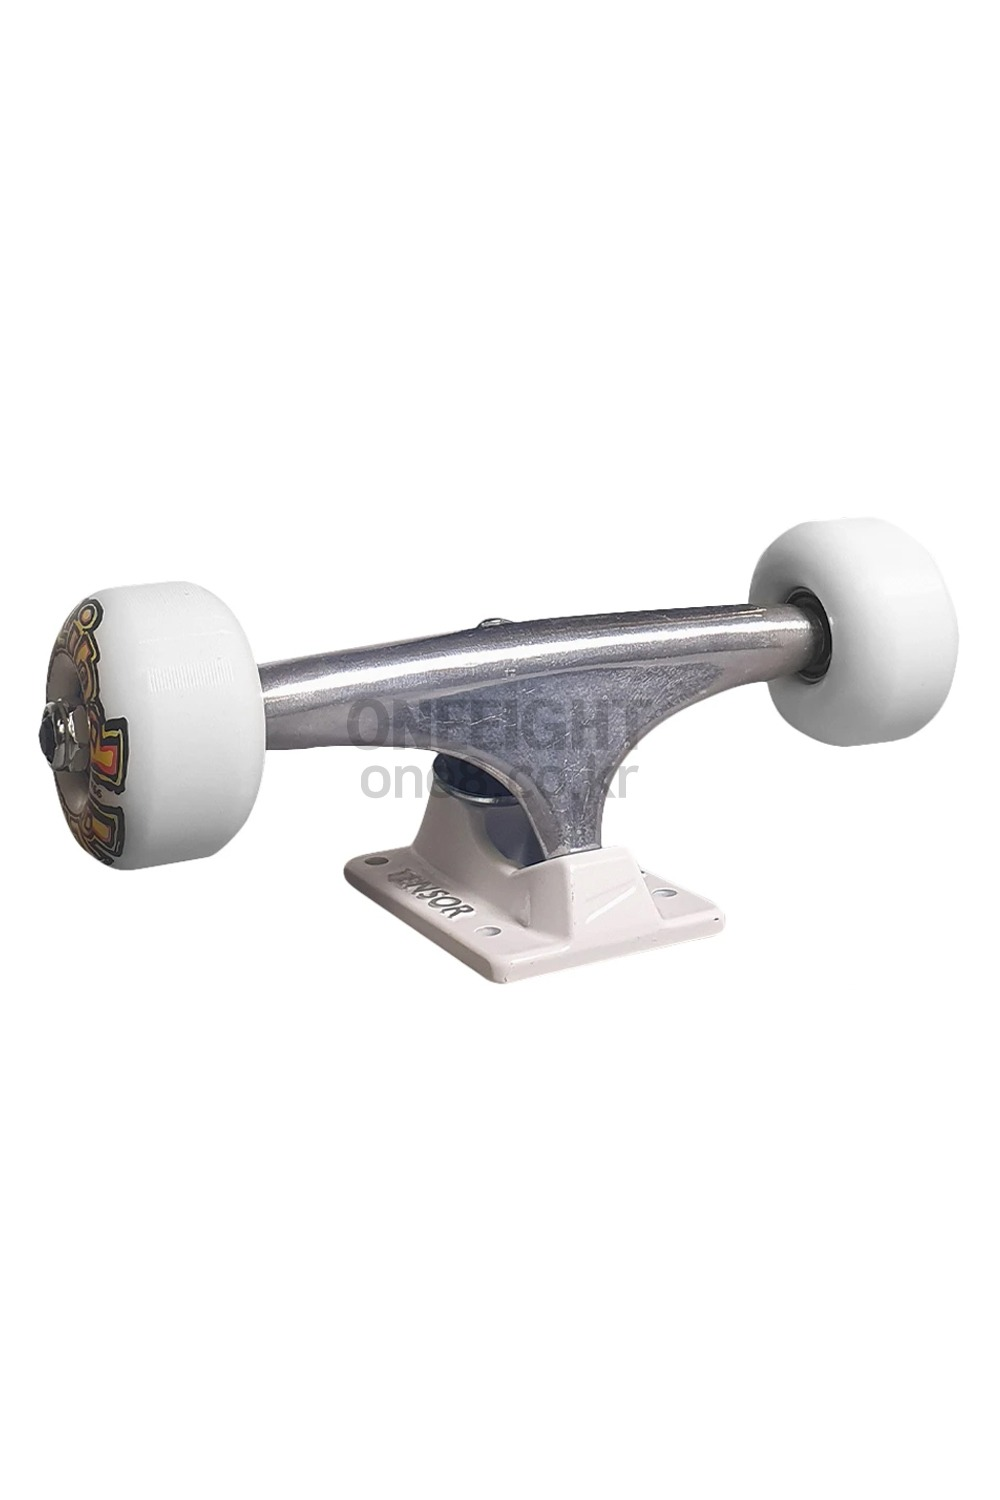 텐서 스케이트보드 트럭_TENSOR_BLIND OG STRETCH TRUCK RAW/WHT 5.25 & WHEEL COMBO_ZHT904500